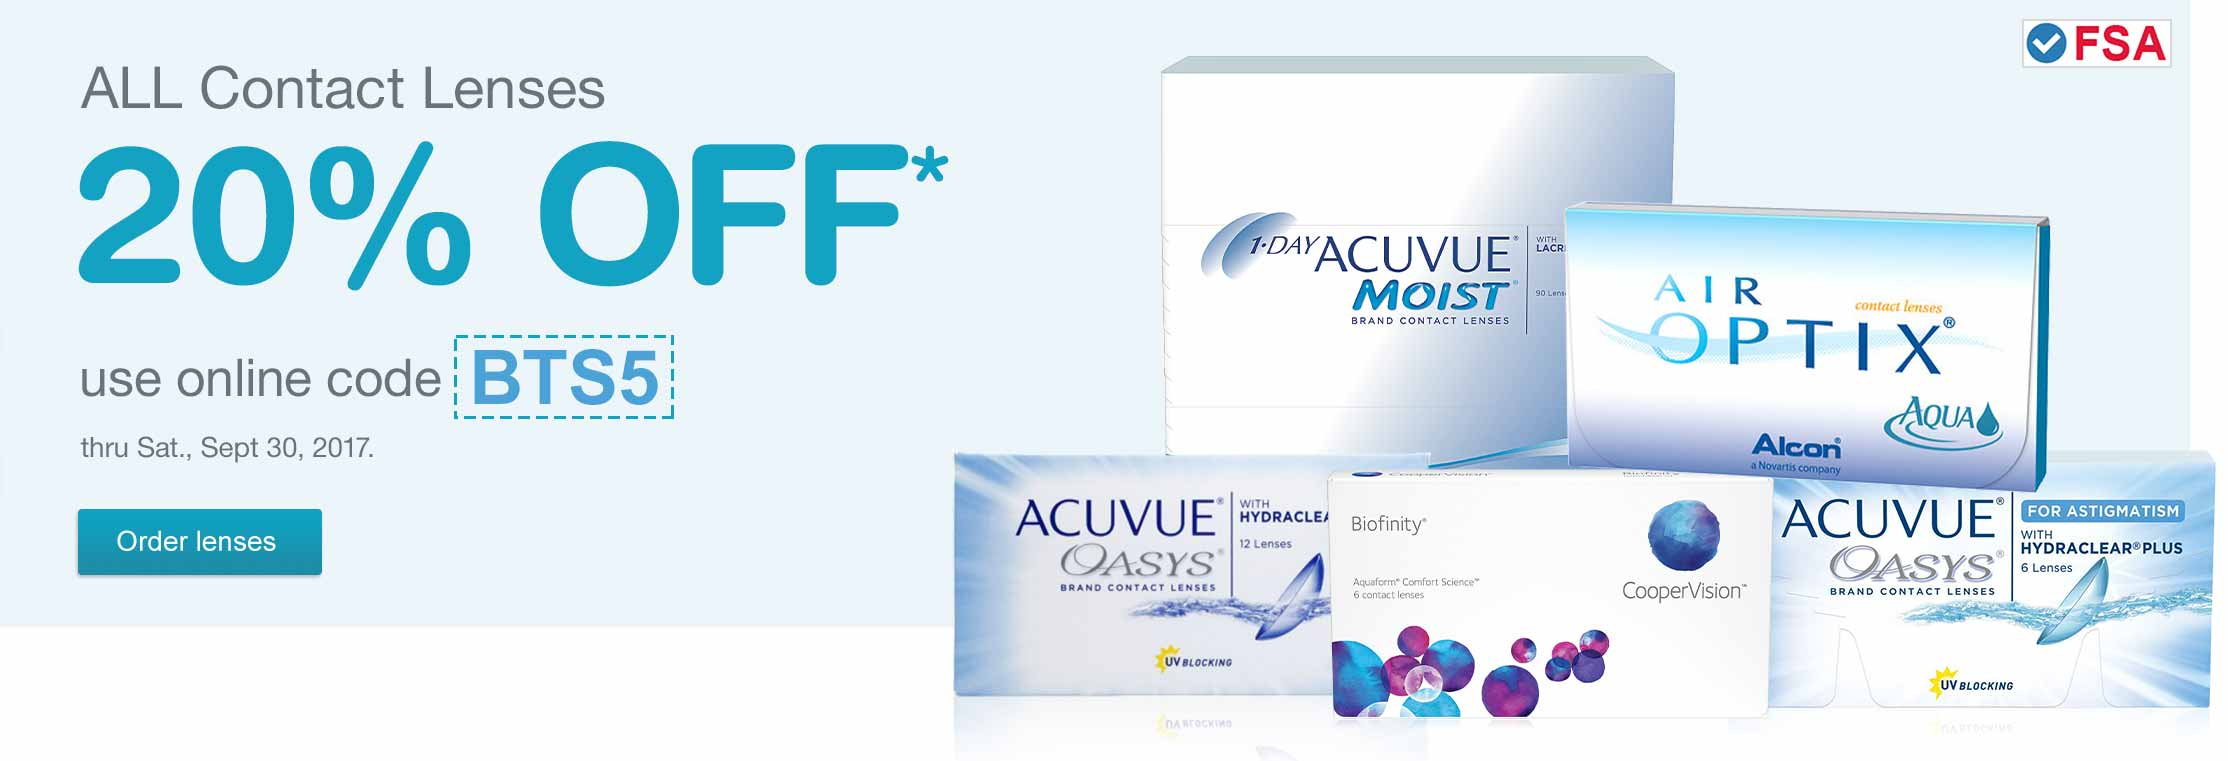 FSA approved. All Contact Lenses 20% OFF.* Use online code BTS5 thru Sat., Sept 30, 2017. Order lenses.